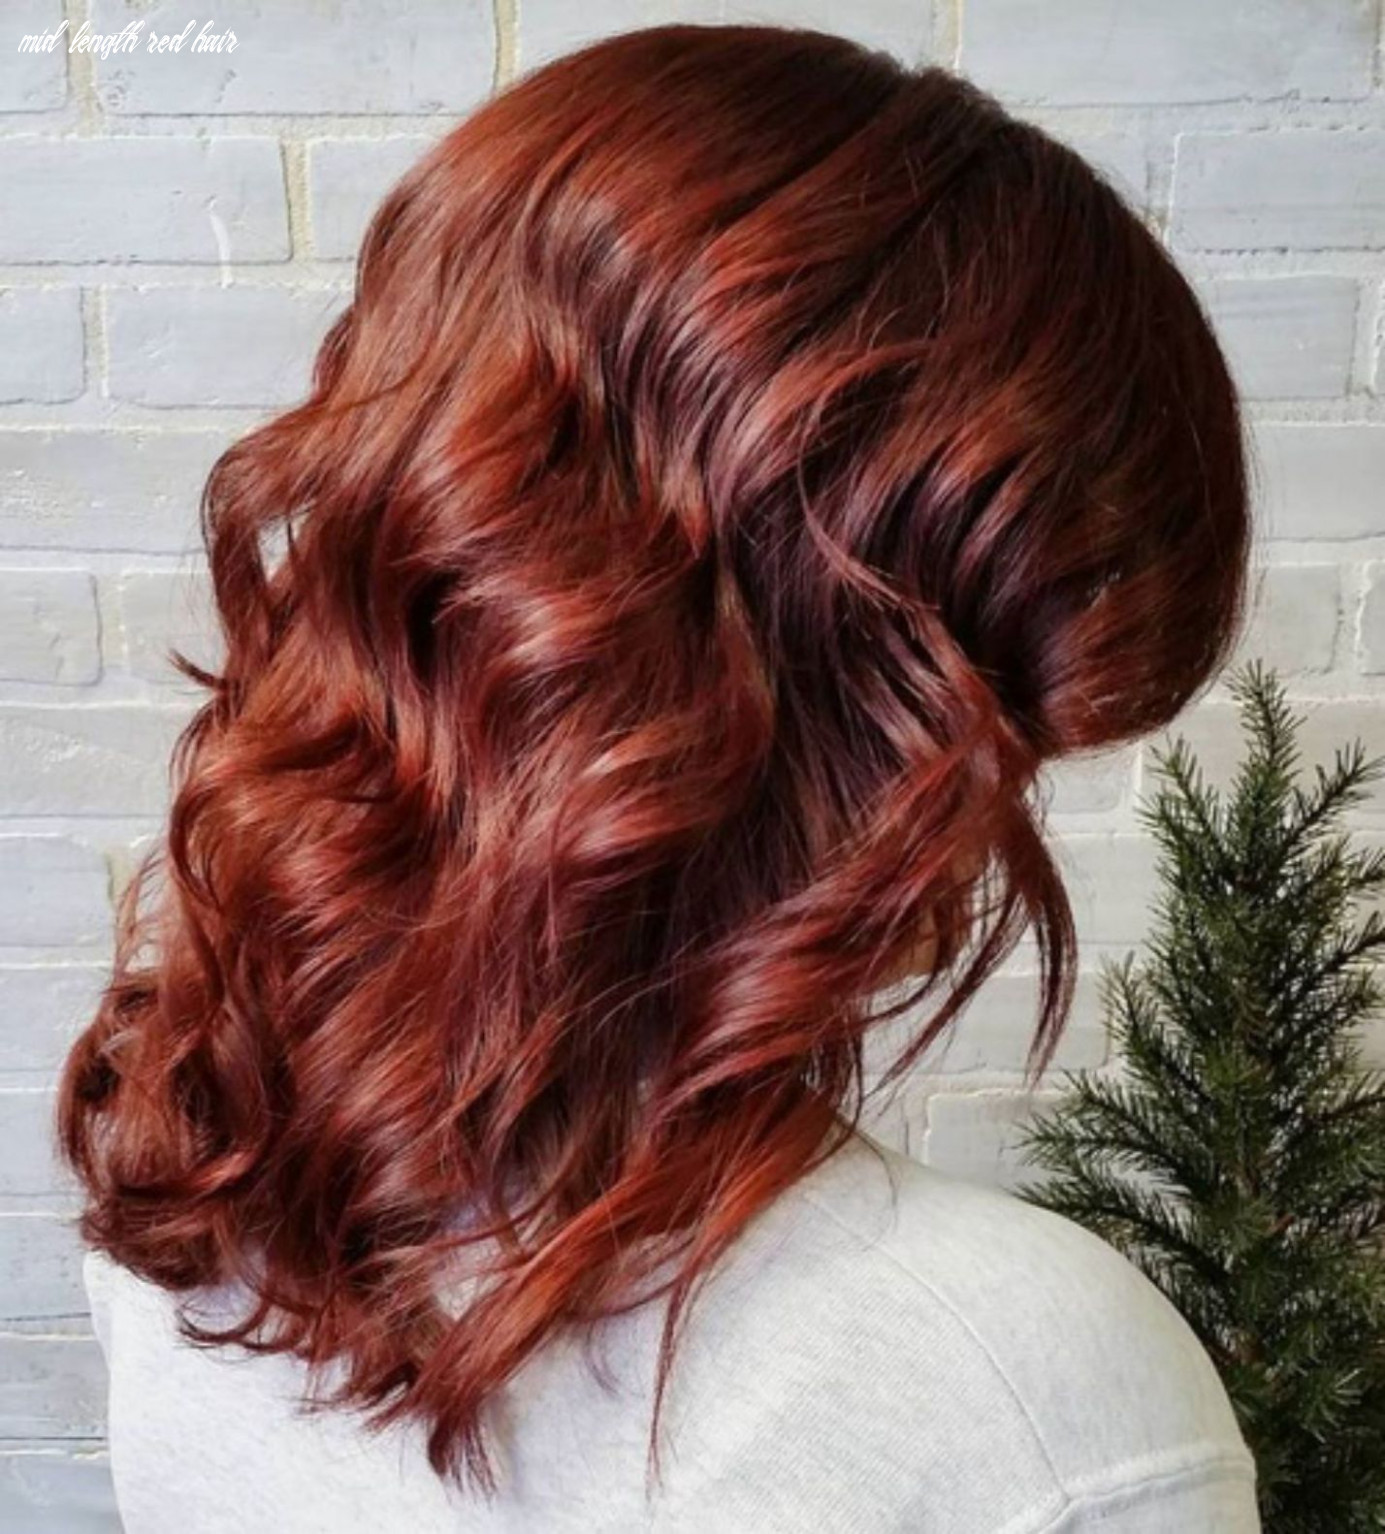 10 Auburn Hair Colors to Emphasize Your Individuality | Hair color ...